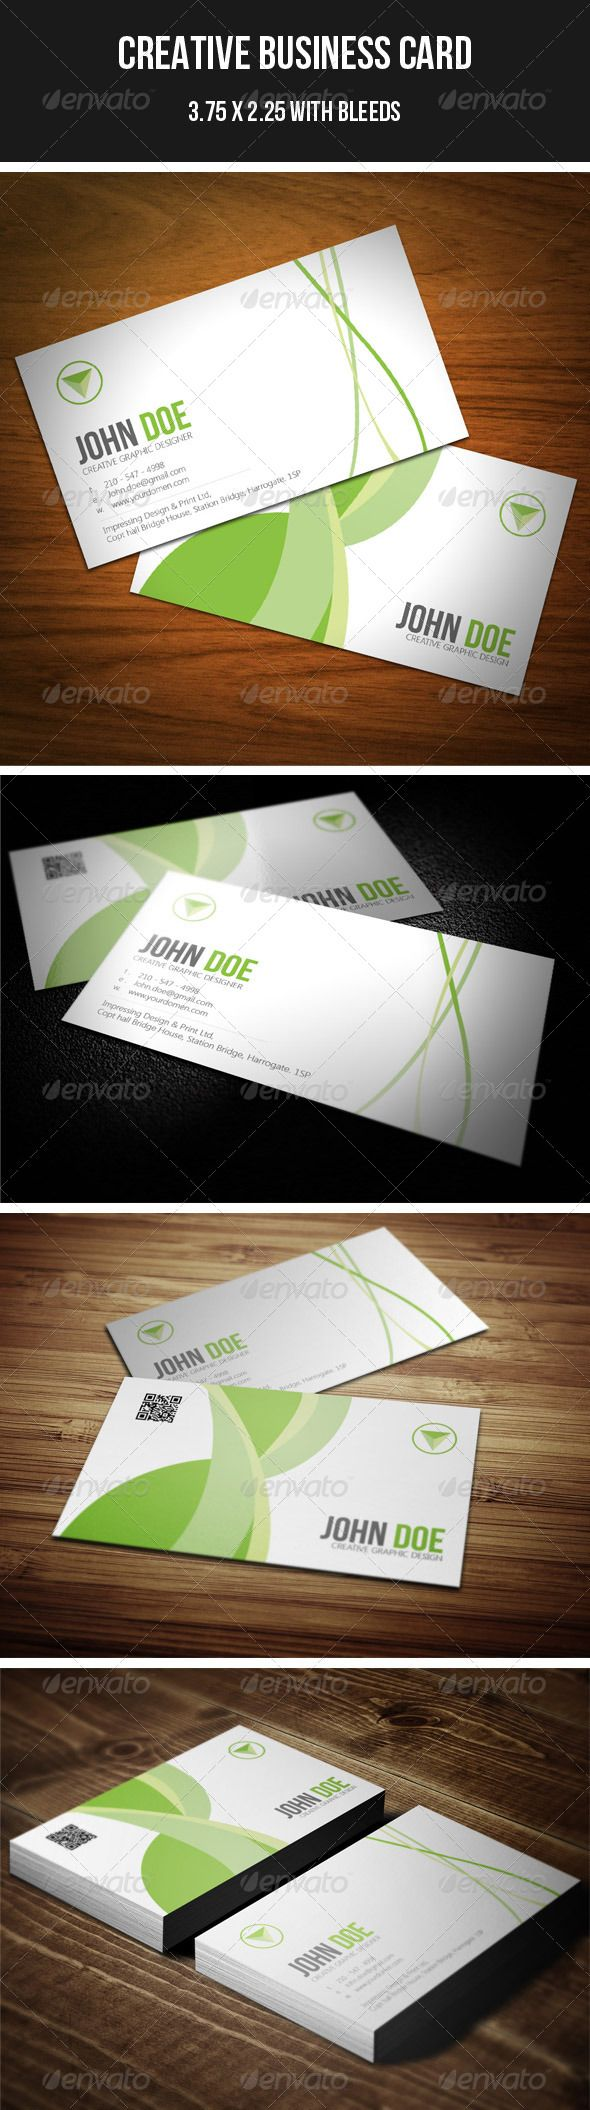 9 best eco business cards images on pinterest business cards creative green business card 41 reheart Choice Image